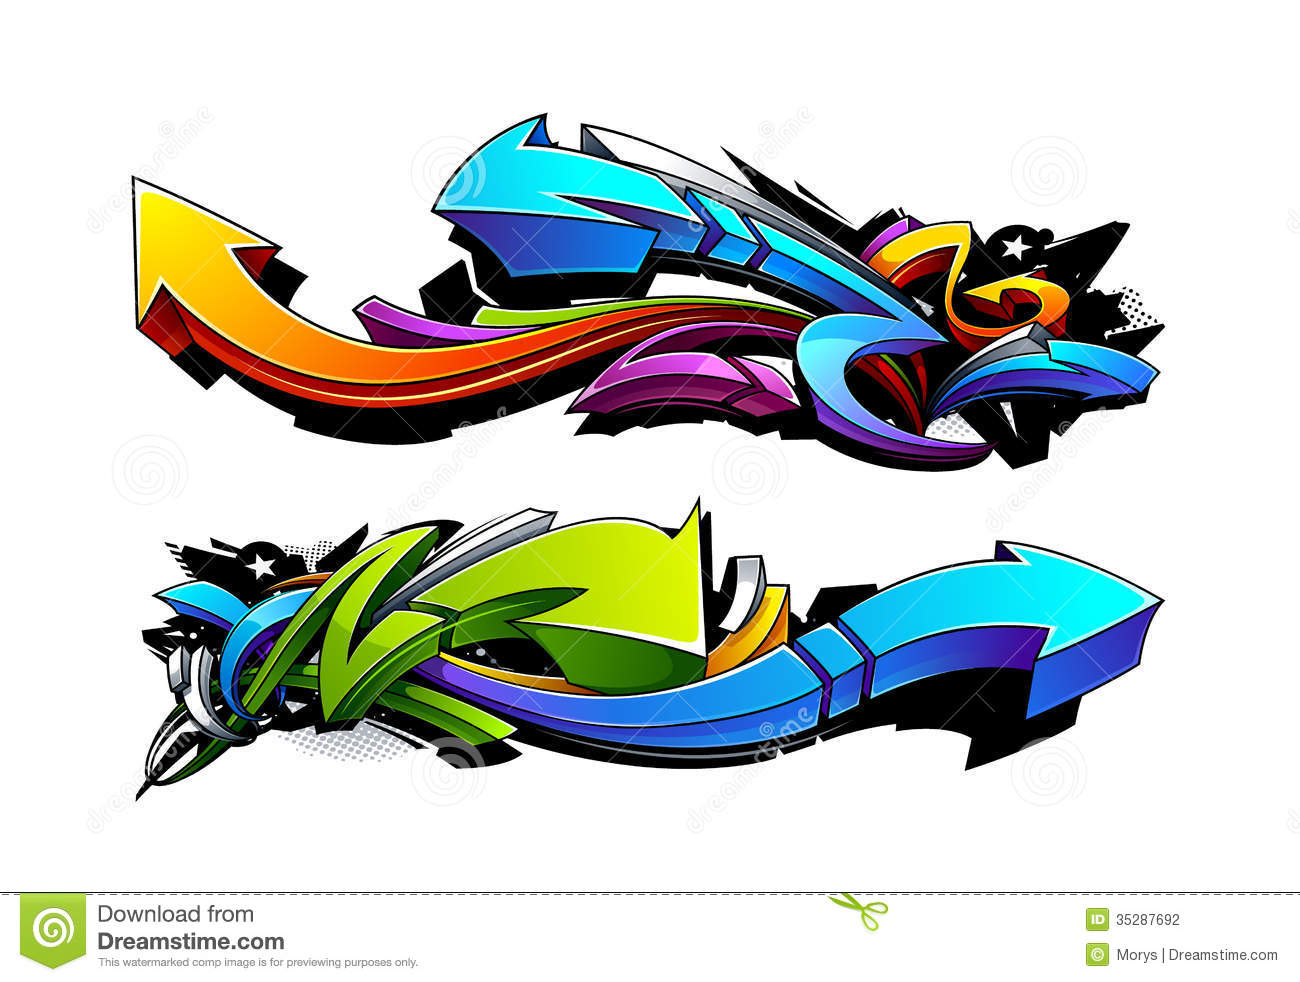 Graffiti Stock Illustrations – 34,370 Graffiti Stock Illustrations ...